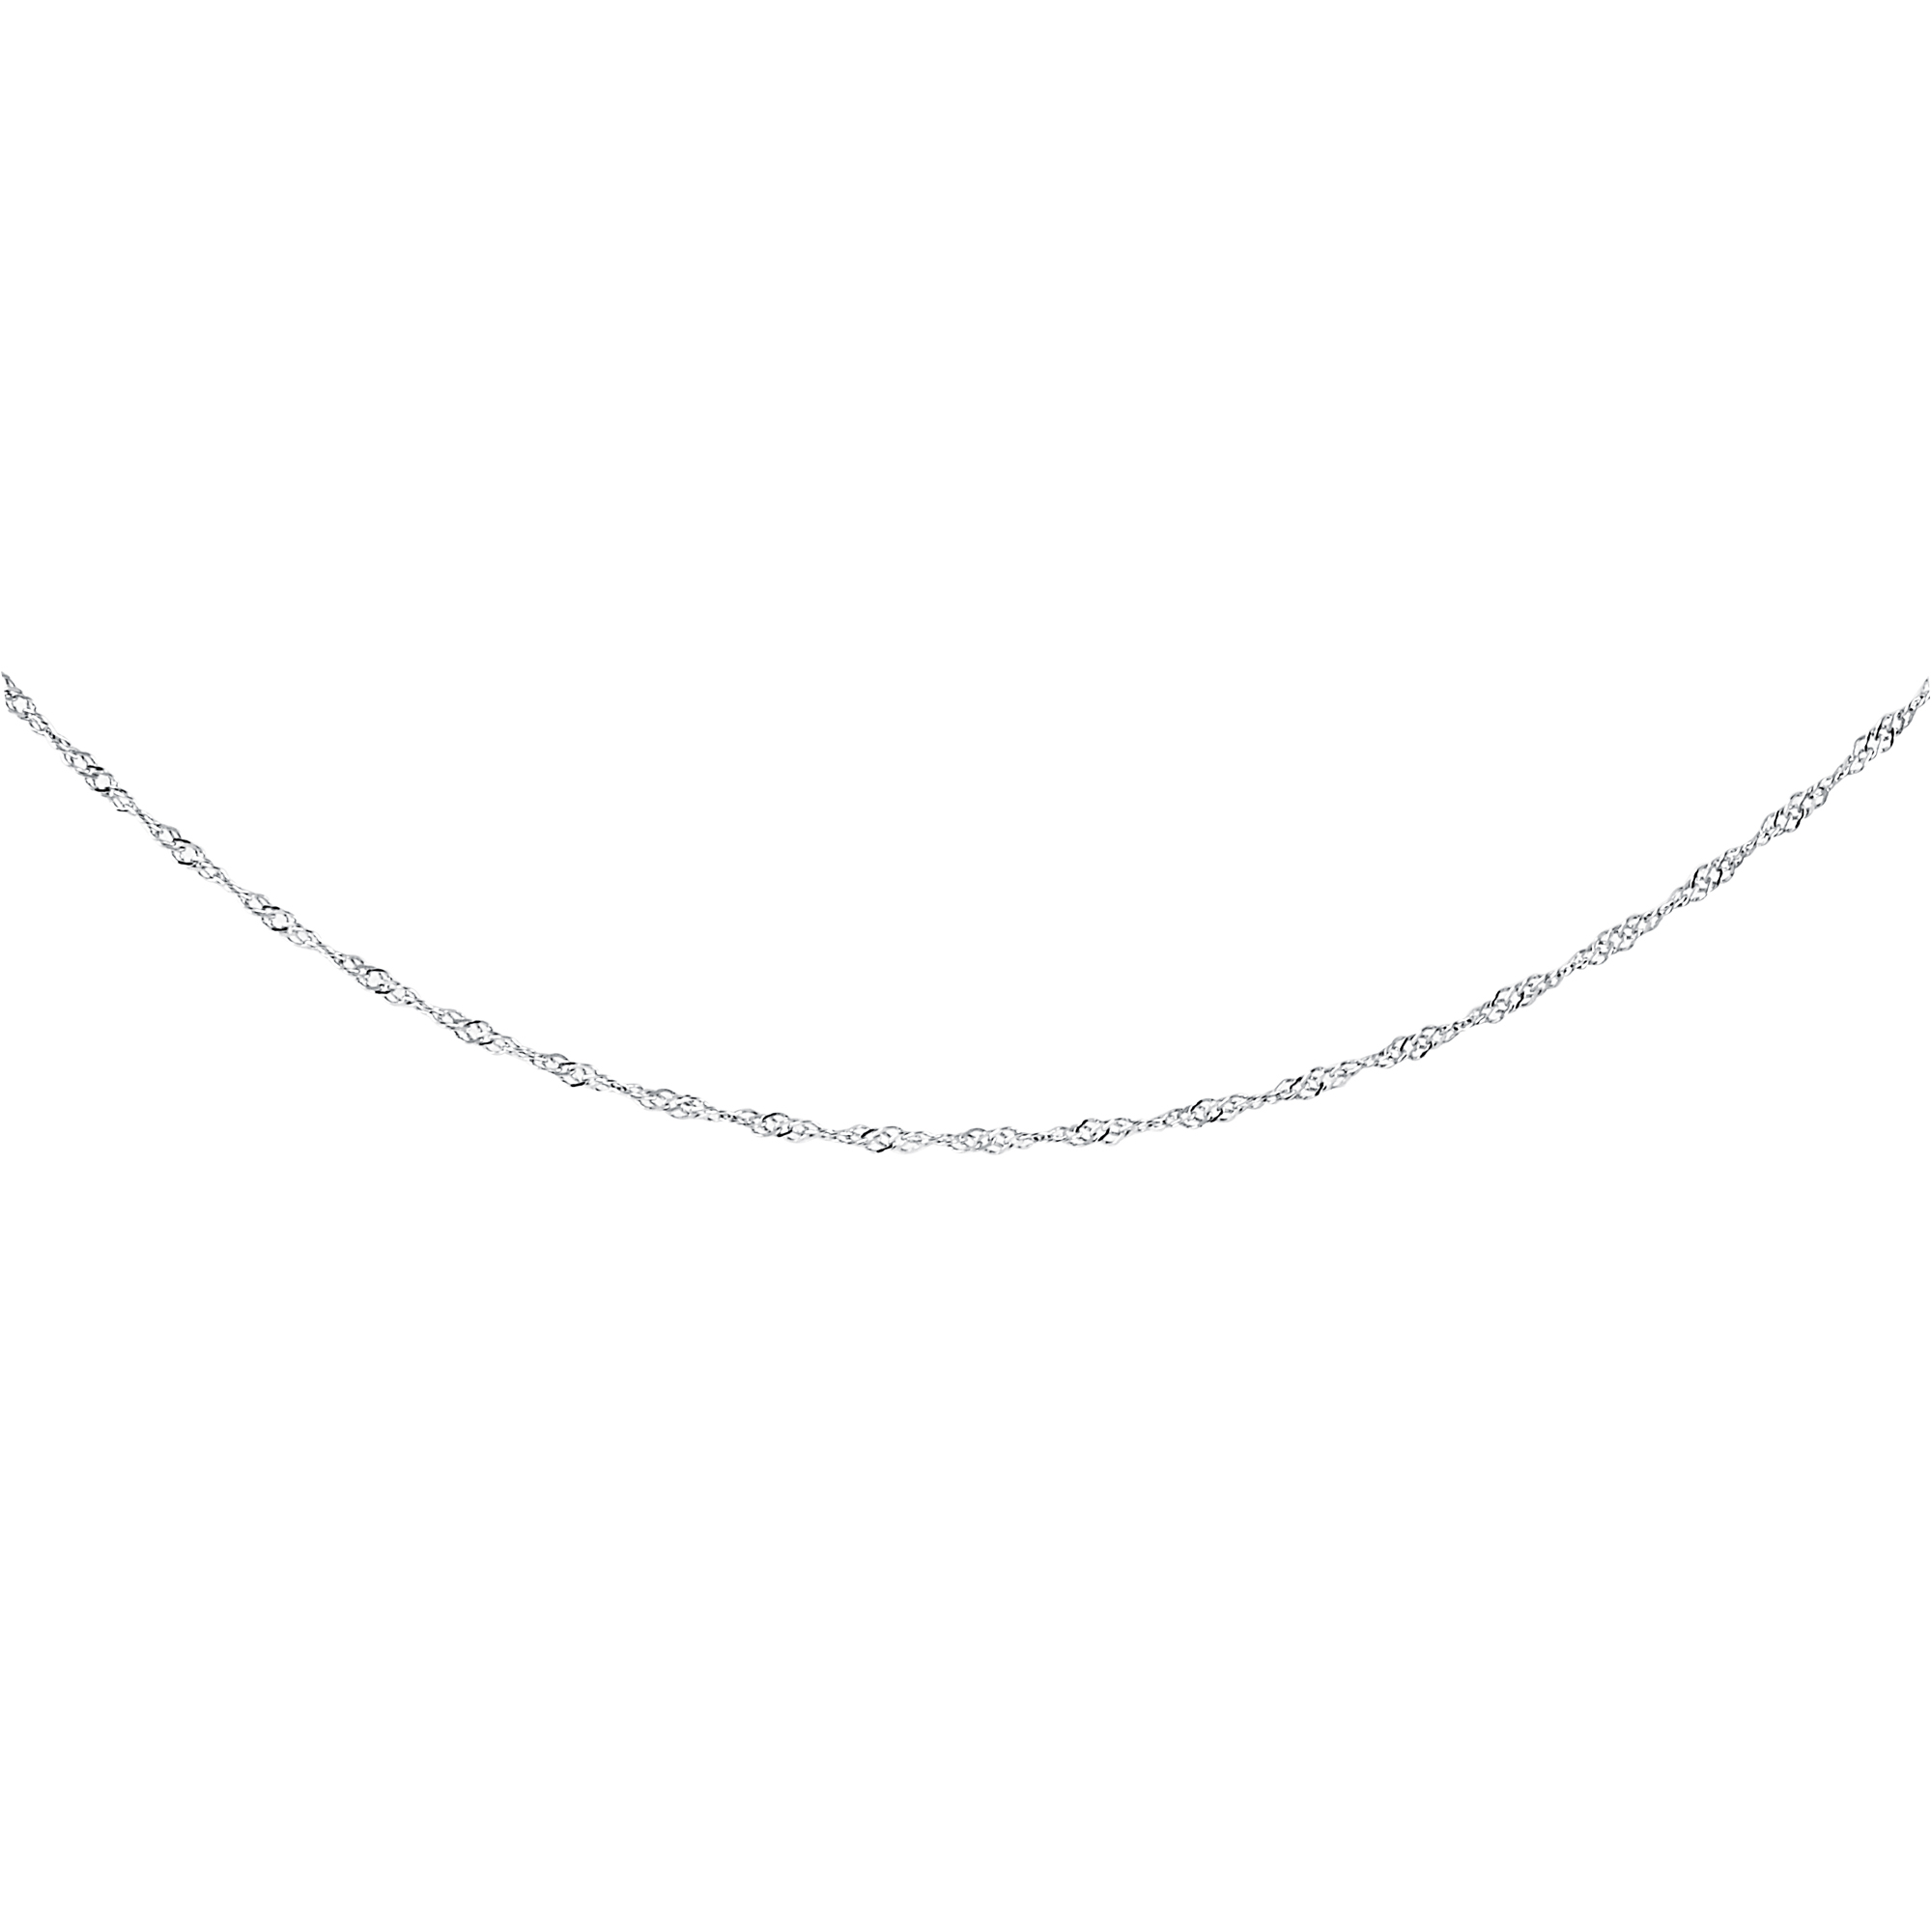 Singapore chain 20 inches in 10K white Gold